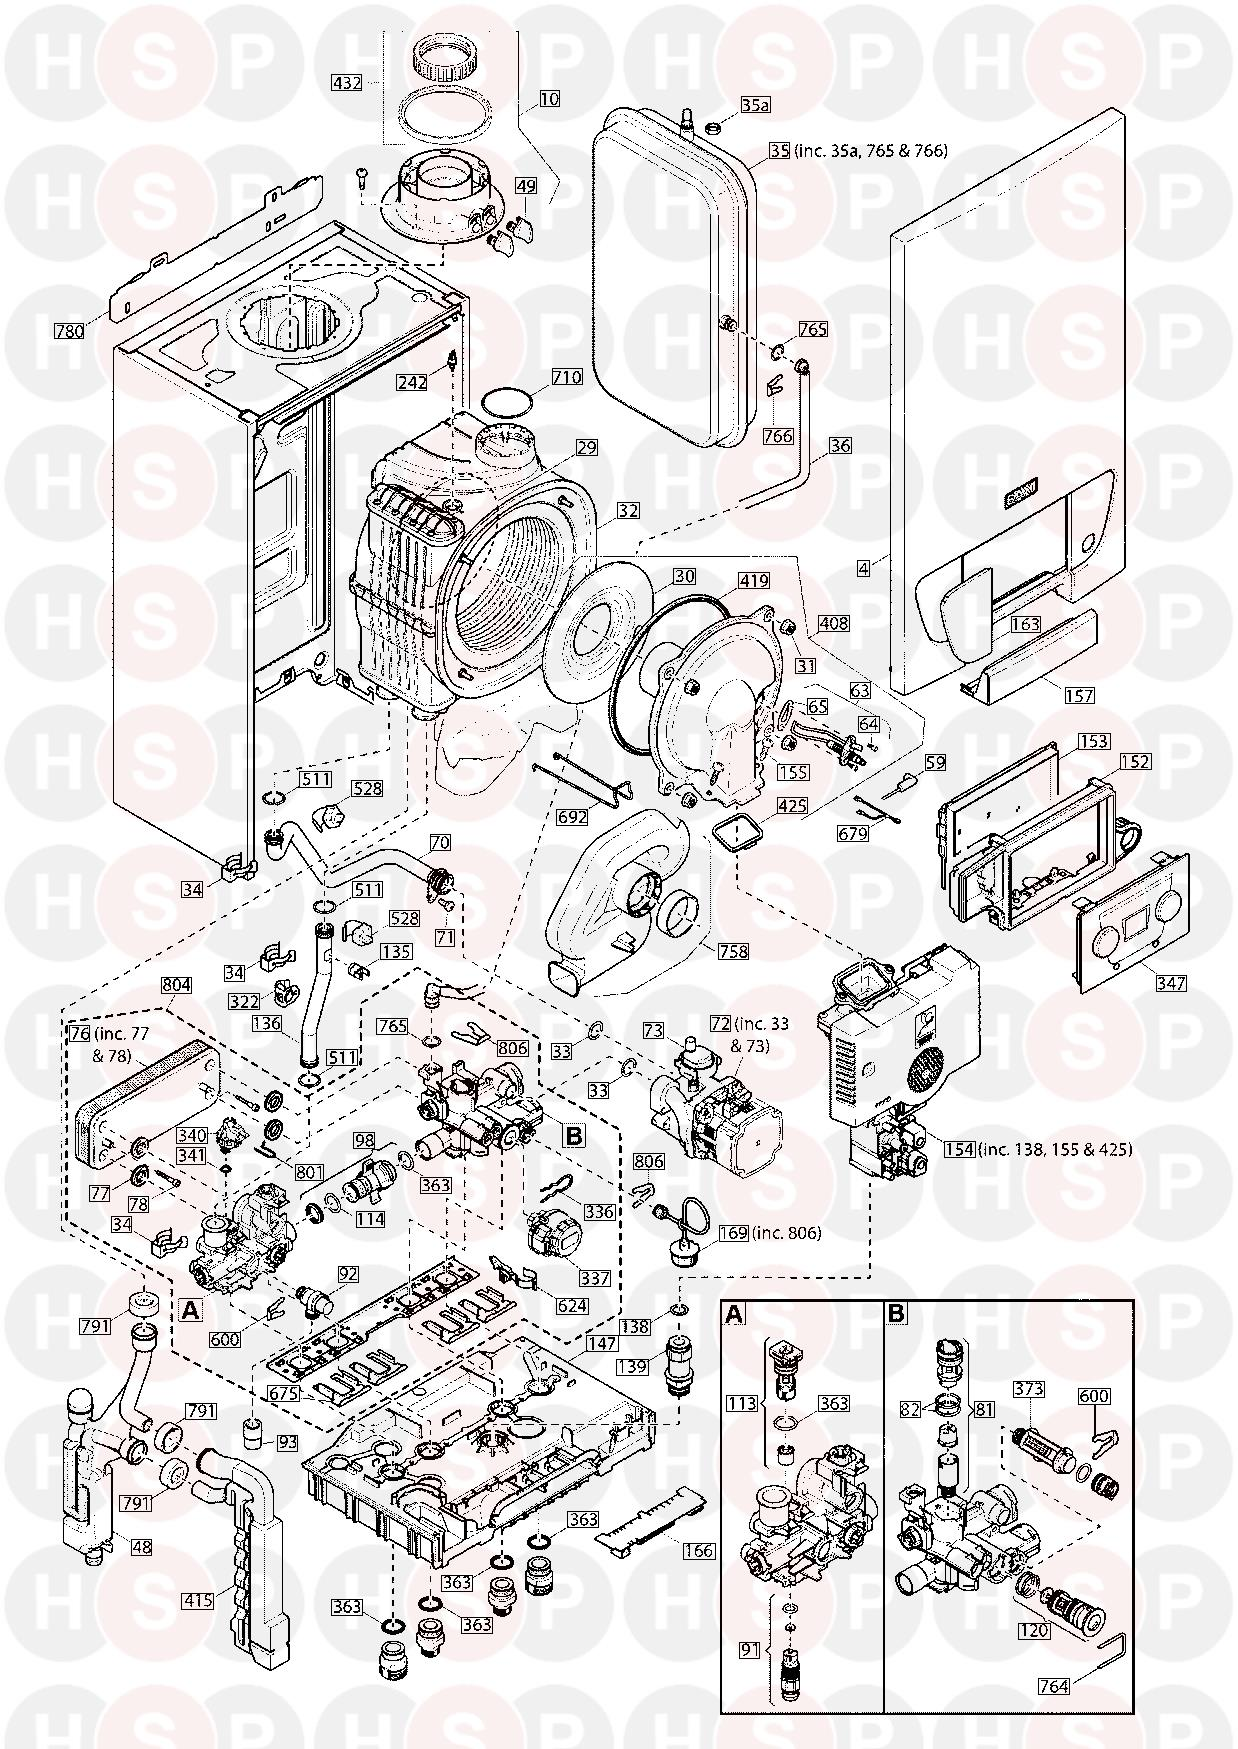 Baxi 228 Combi  Exploded View Diagram